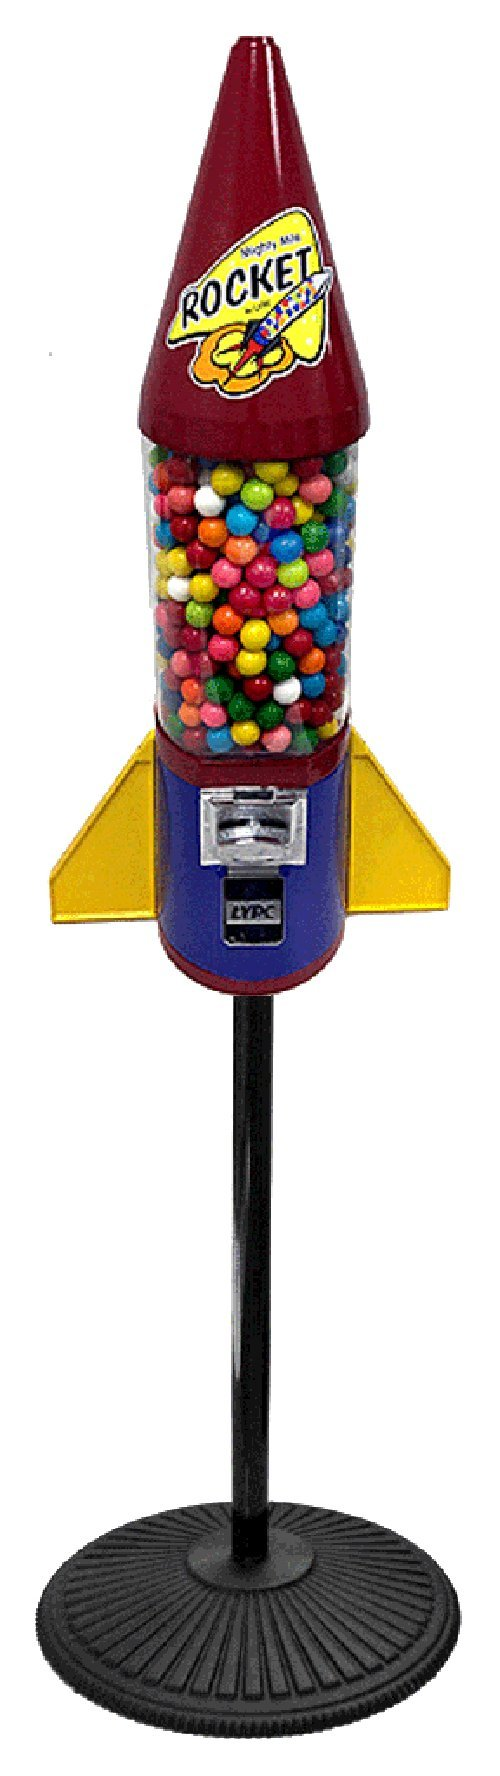 Fiesta Mighty Mite Rocket Gumball Machine with Stand